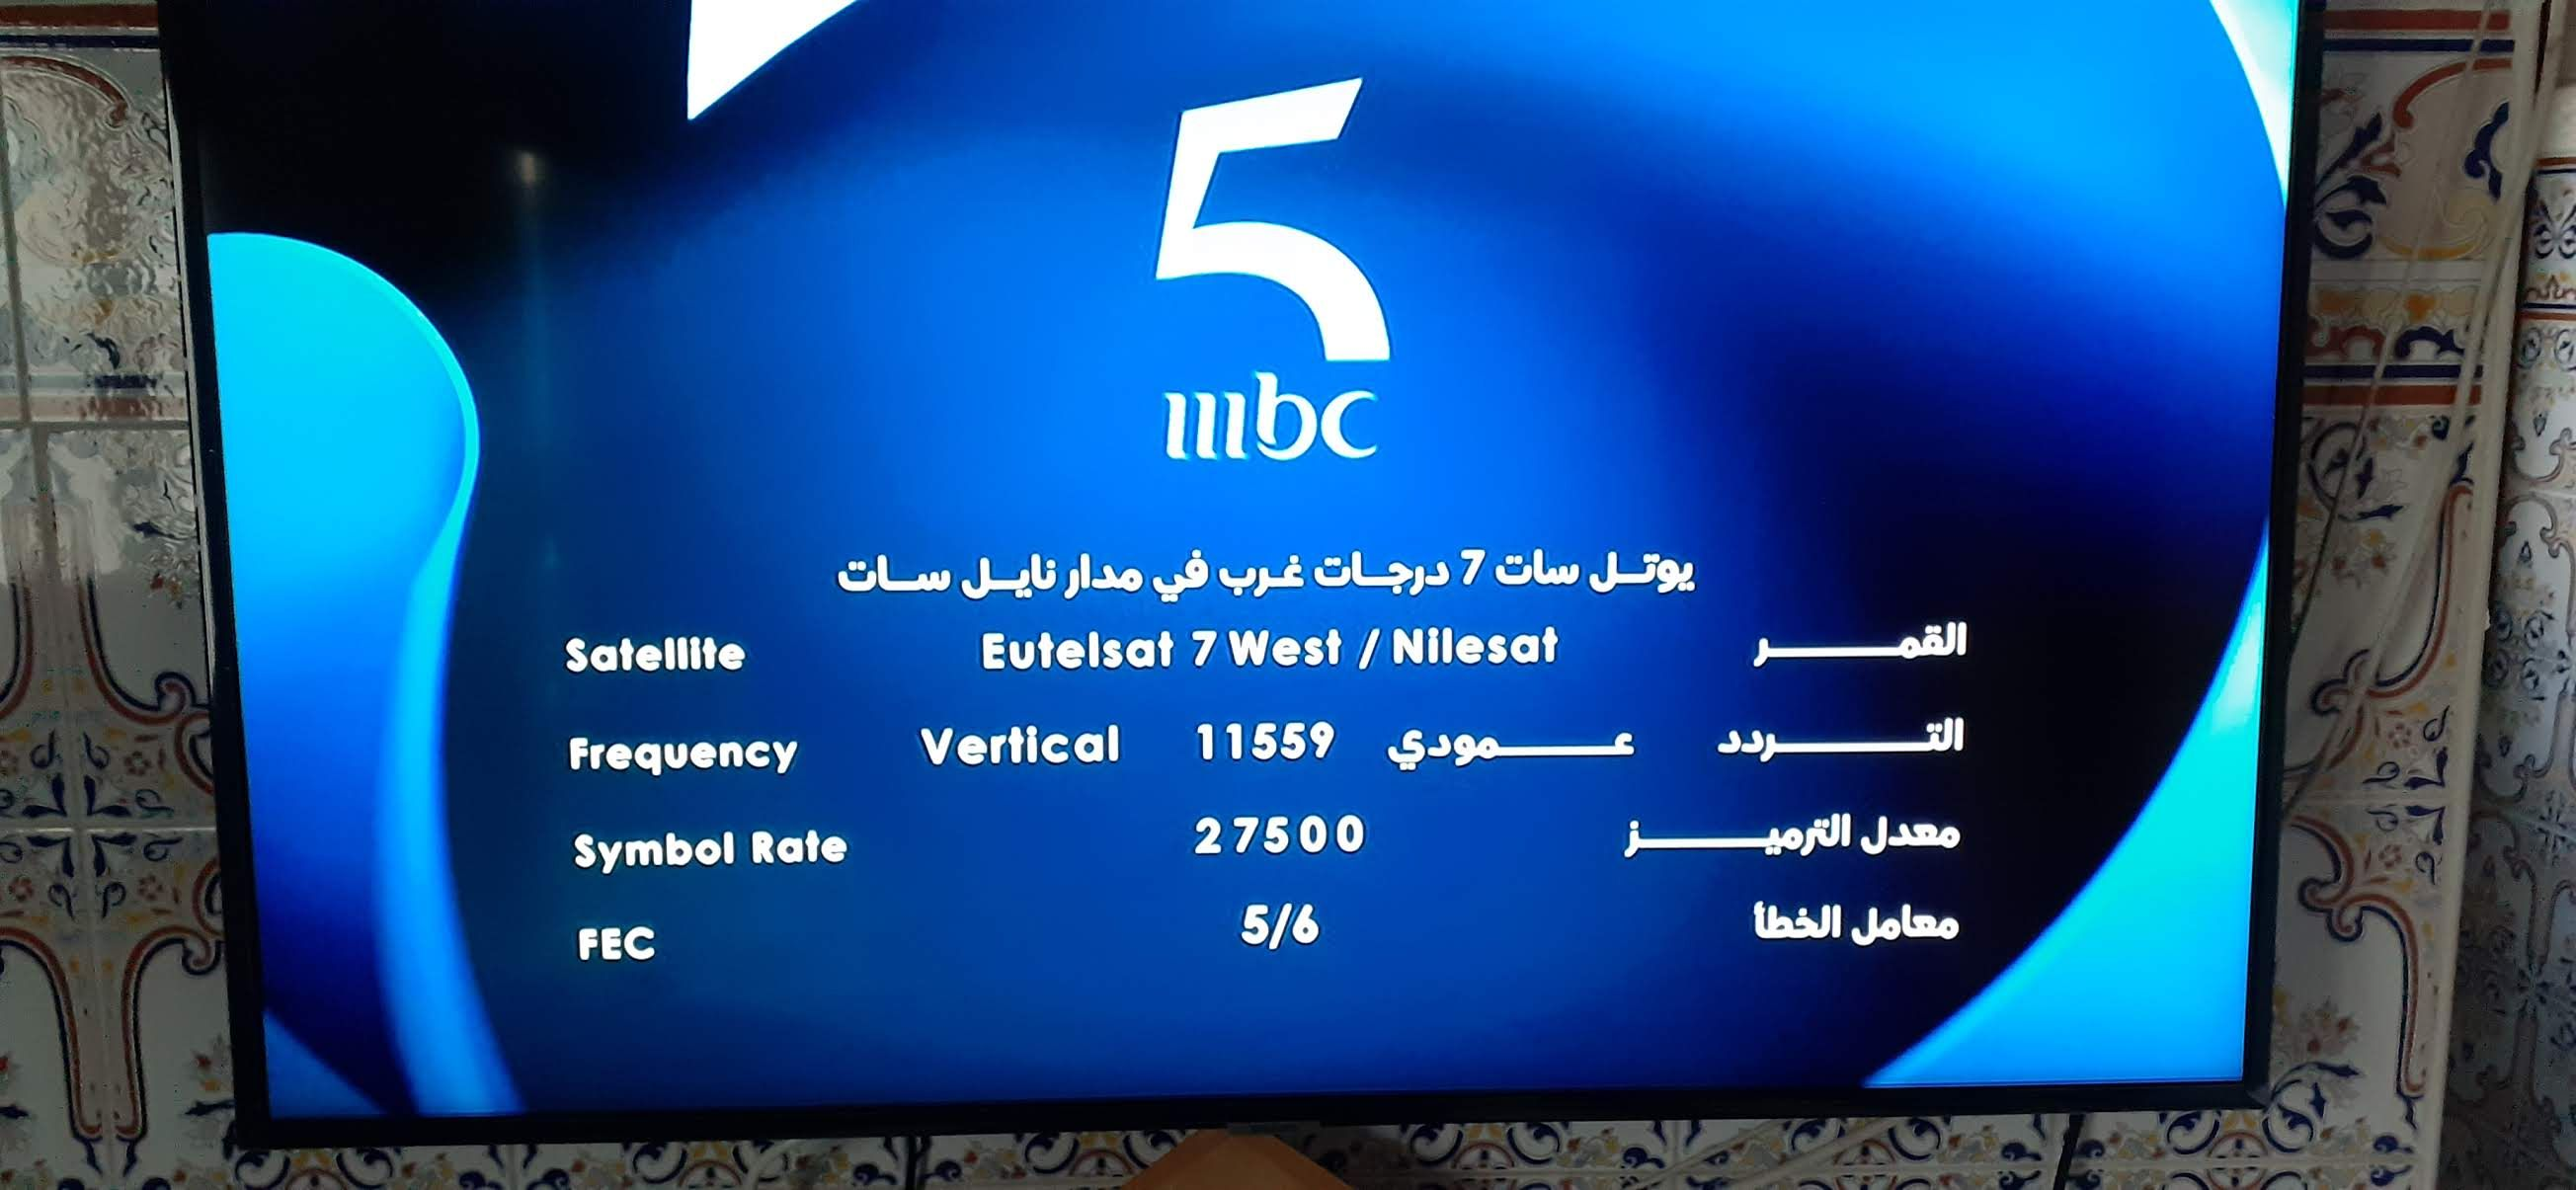 Mbc 5 New Channel For North Africa Freqode Com Tv Channel News Channels Real Madrid Tv